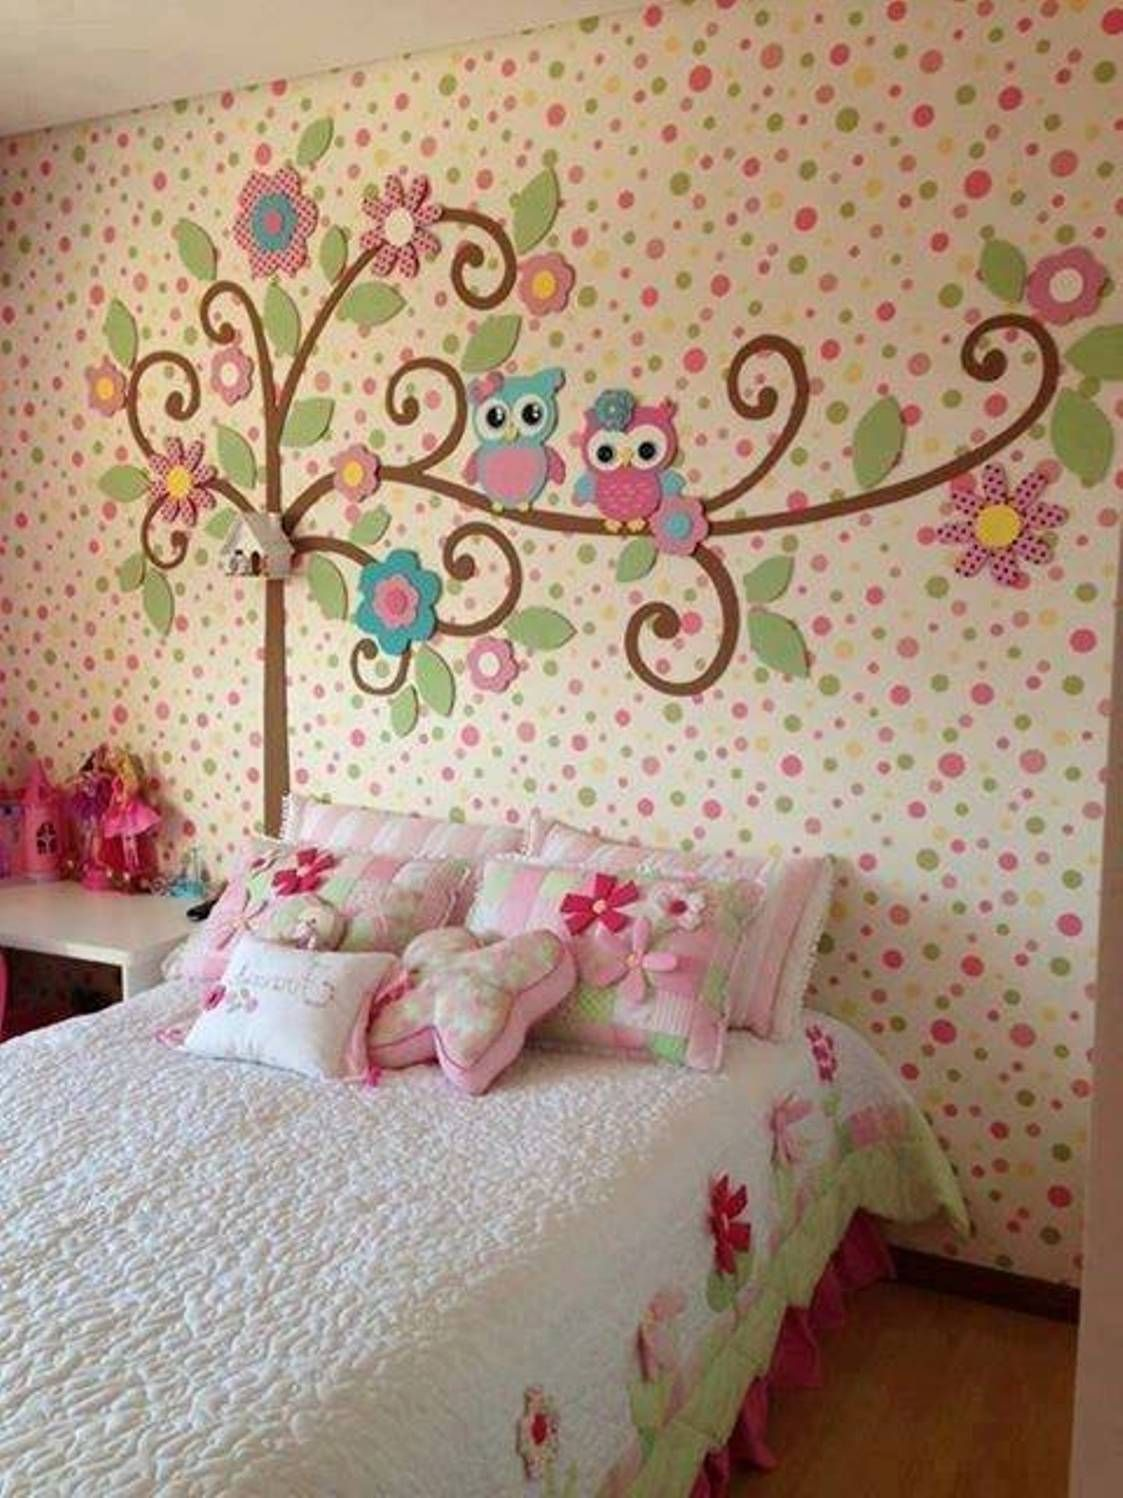 Teenage bedroom wall art - Cute Girls Bedroom Design Little Girls Bedroom Design Better Home And Garden